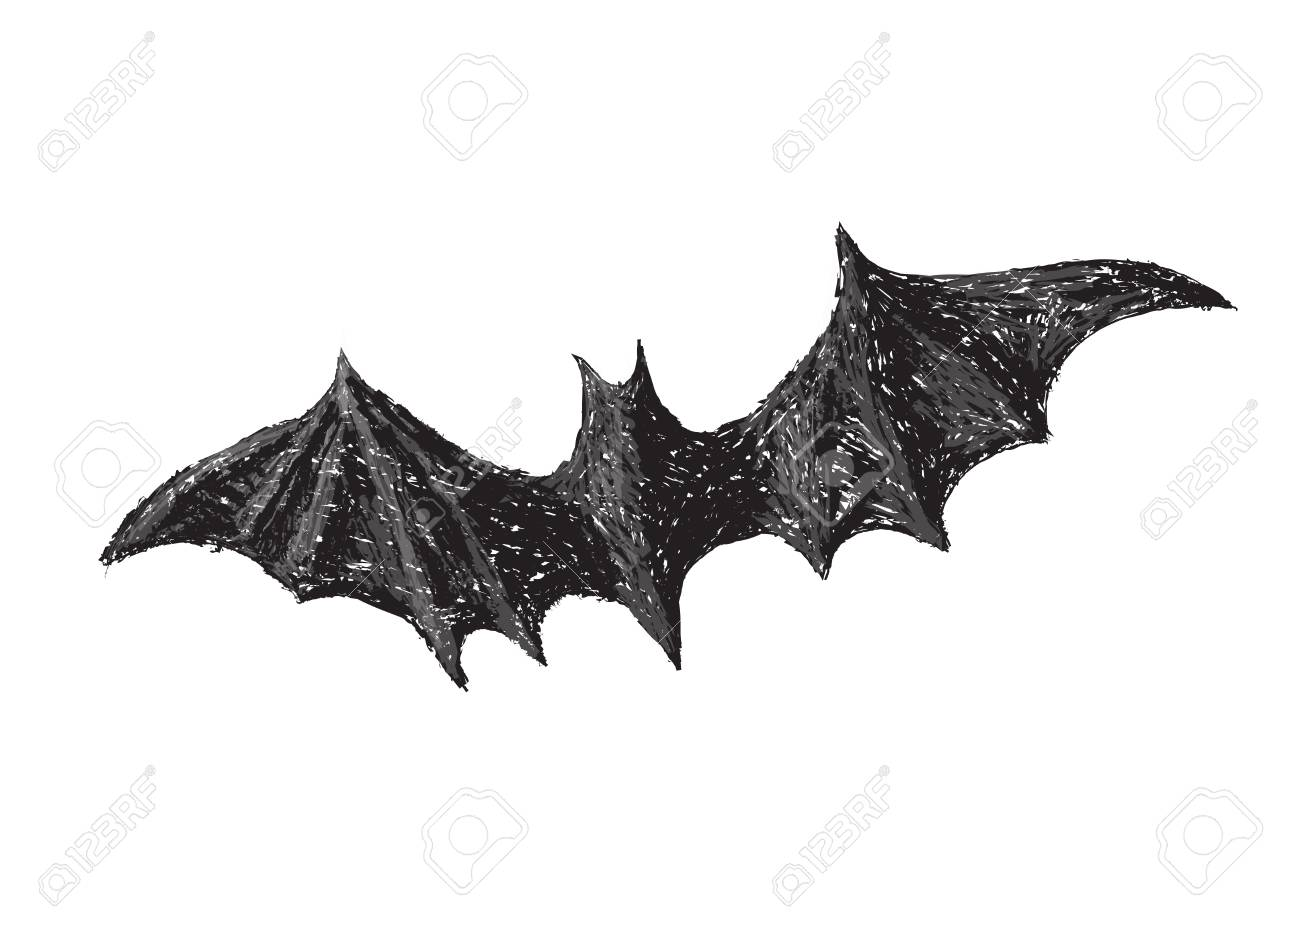 Hand drawn bat with open wings isolated on white background